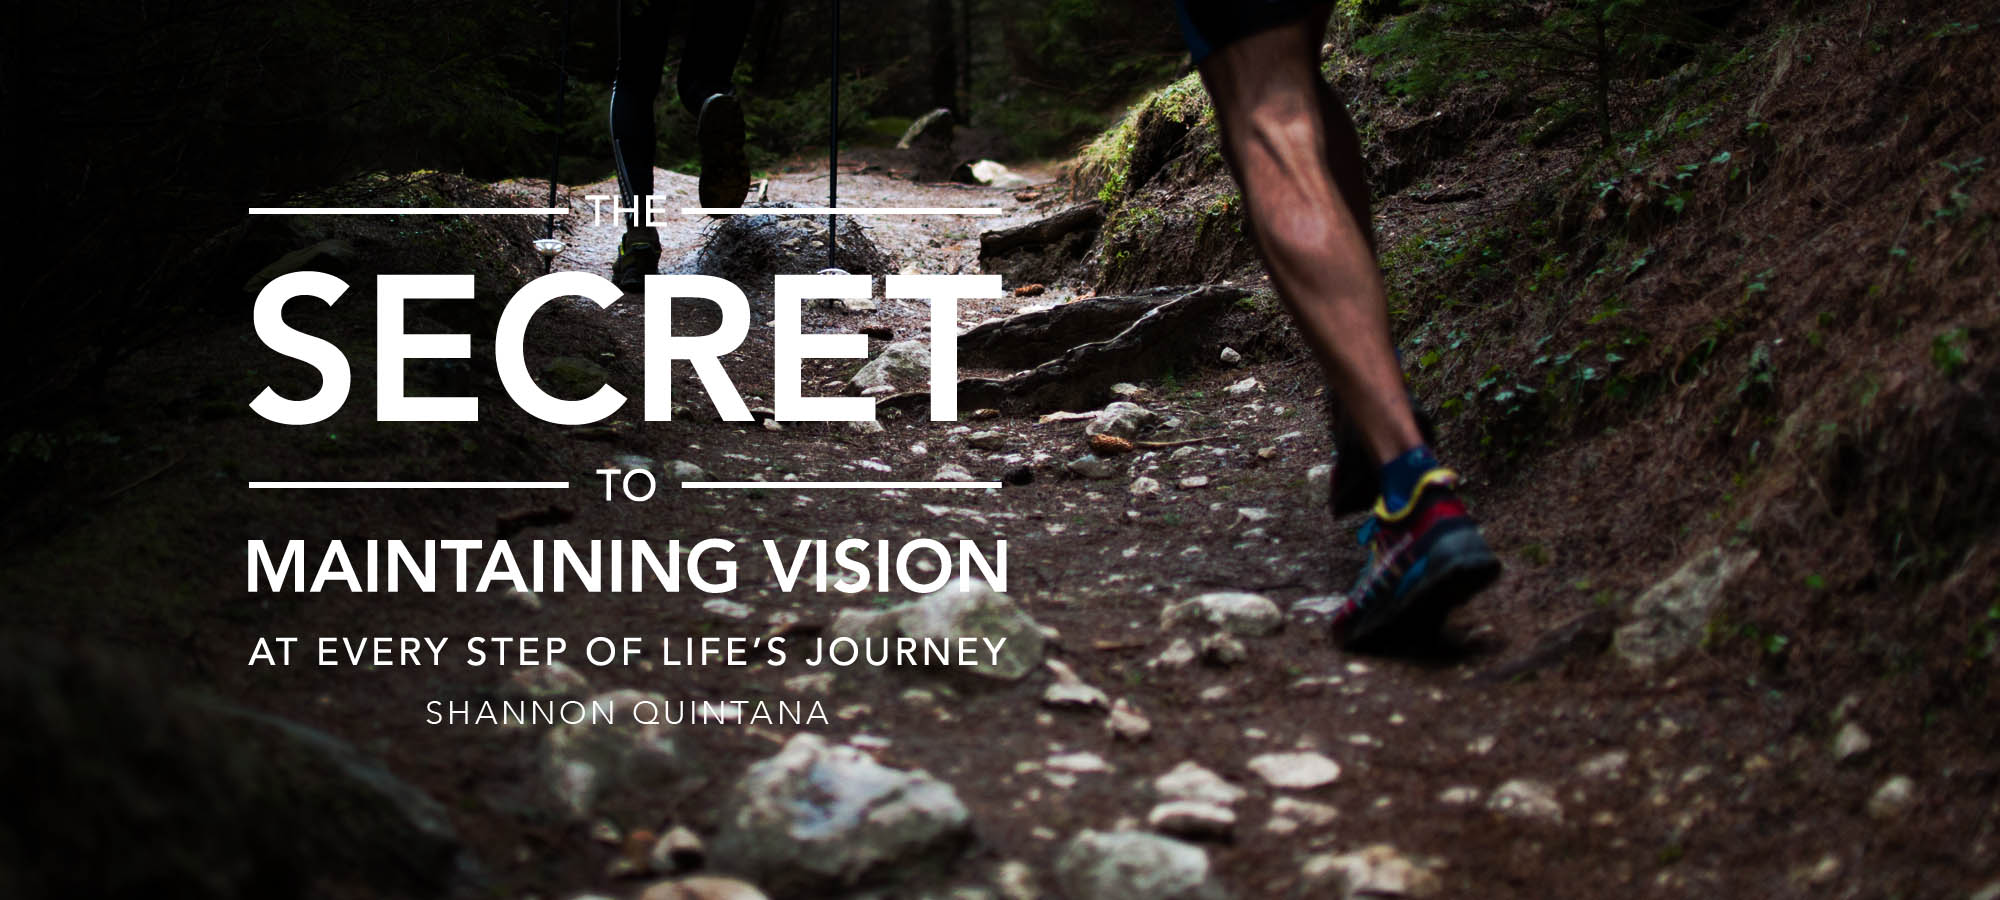 The Secret to Maintaining Vision at Every Step of Life's Journey